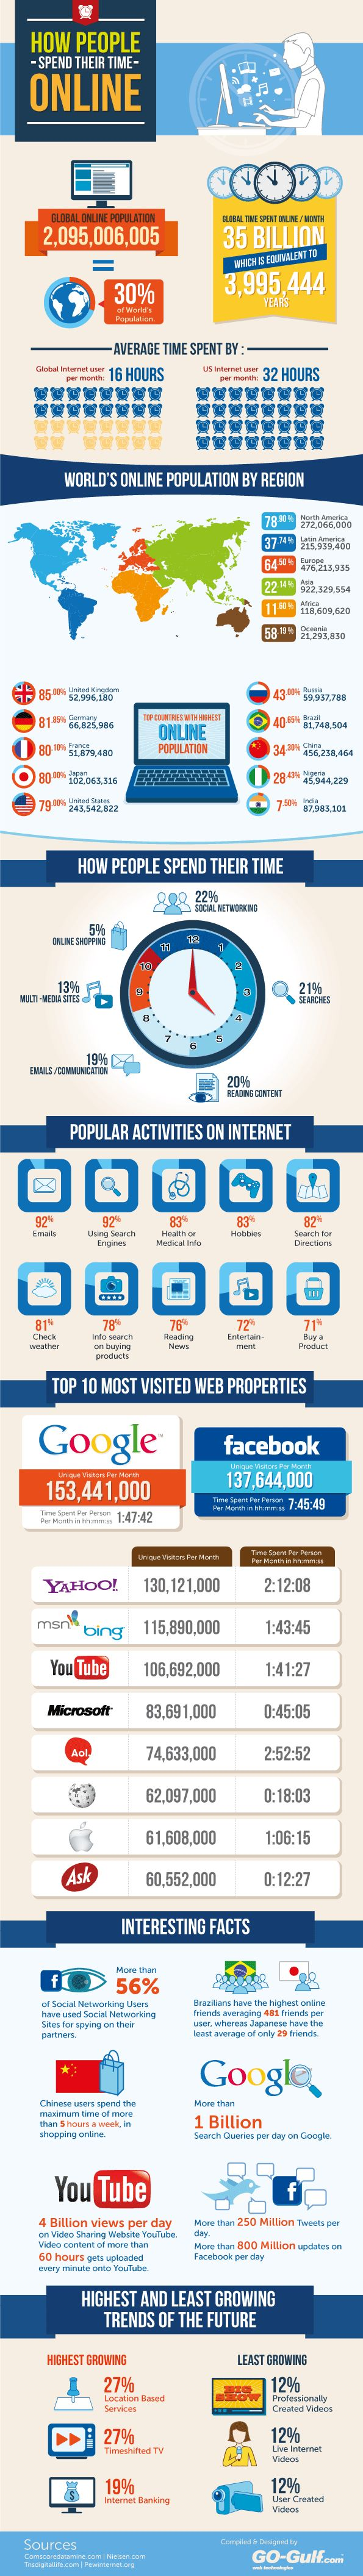 68 best Infographics images on Pinterest | Info graphics ...